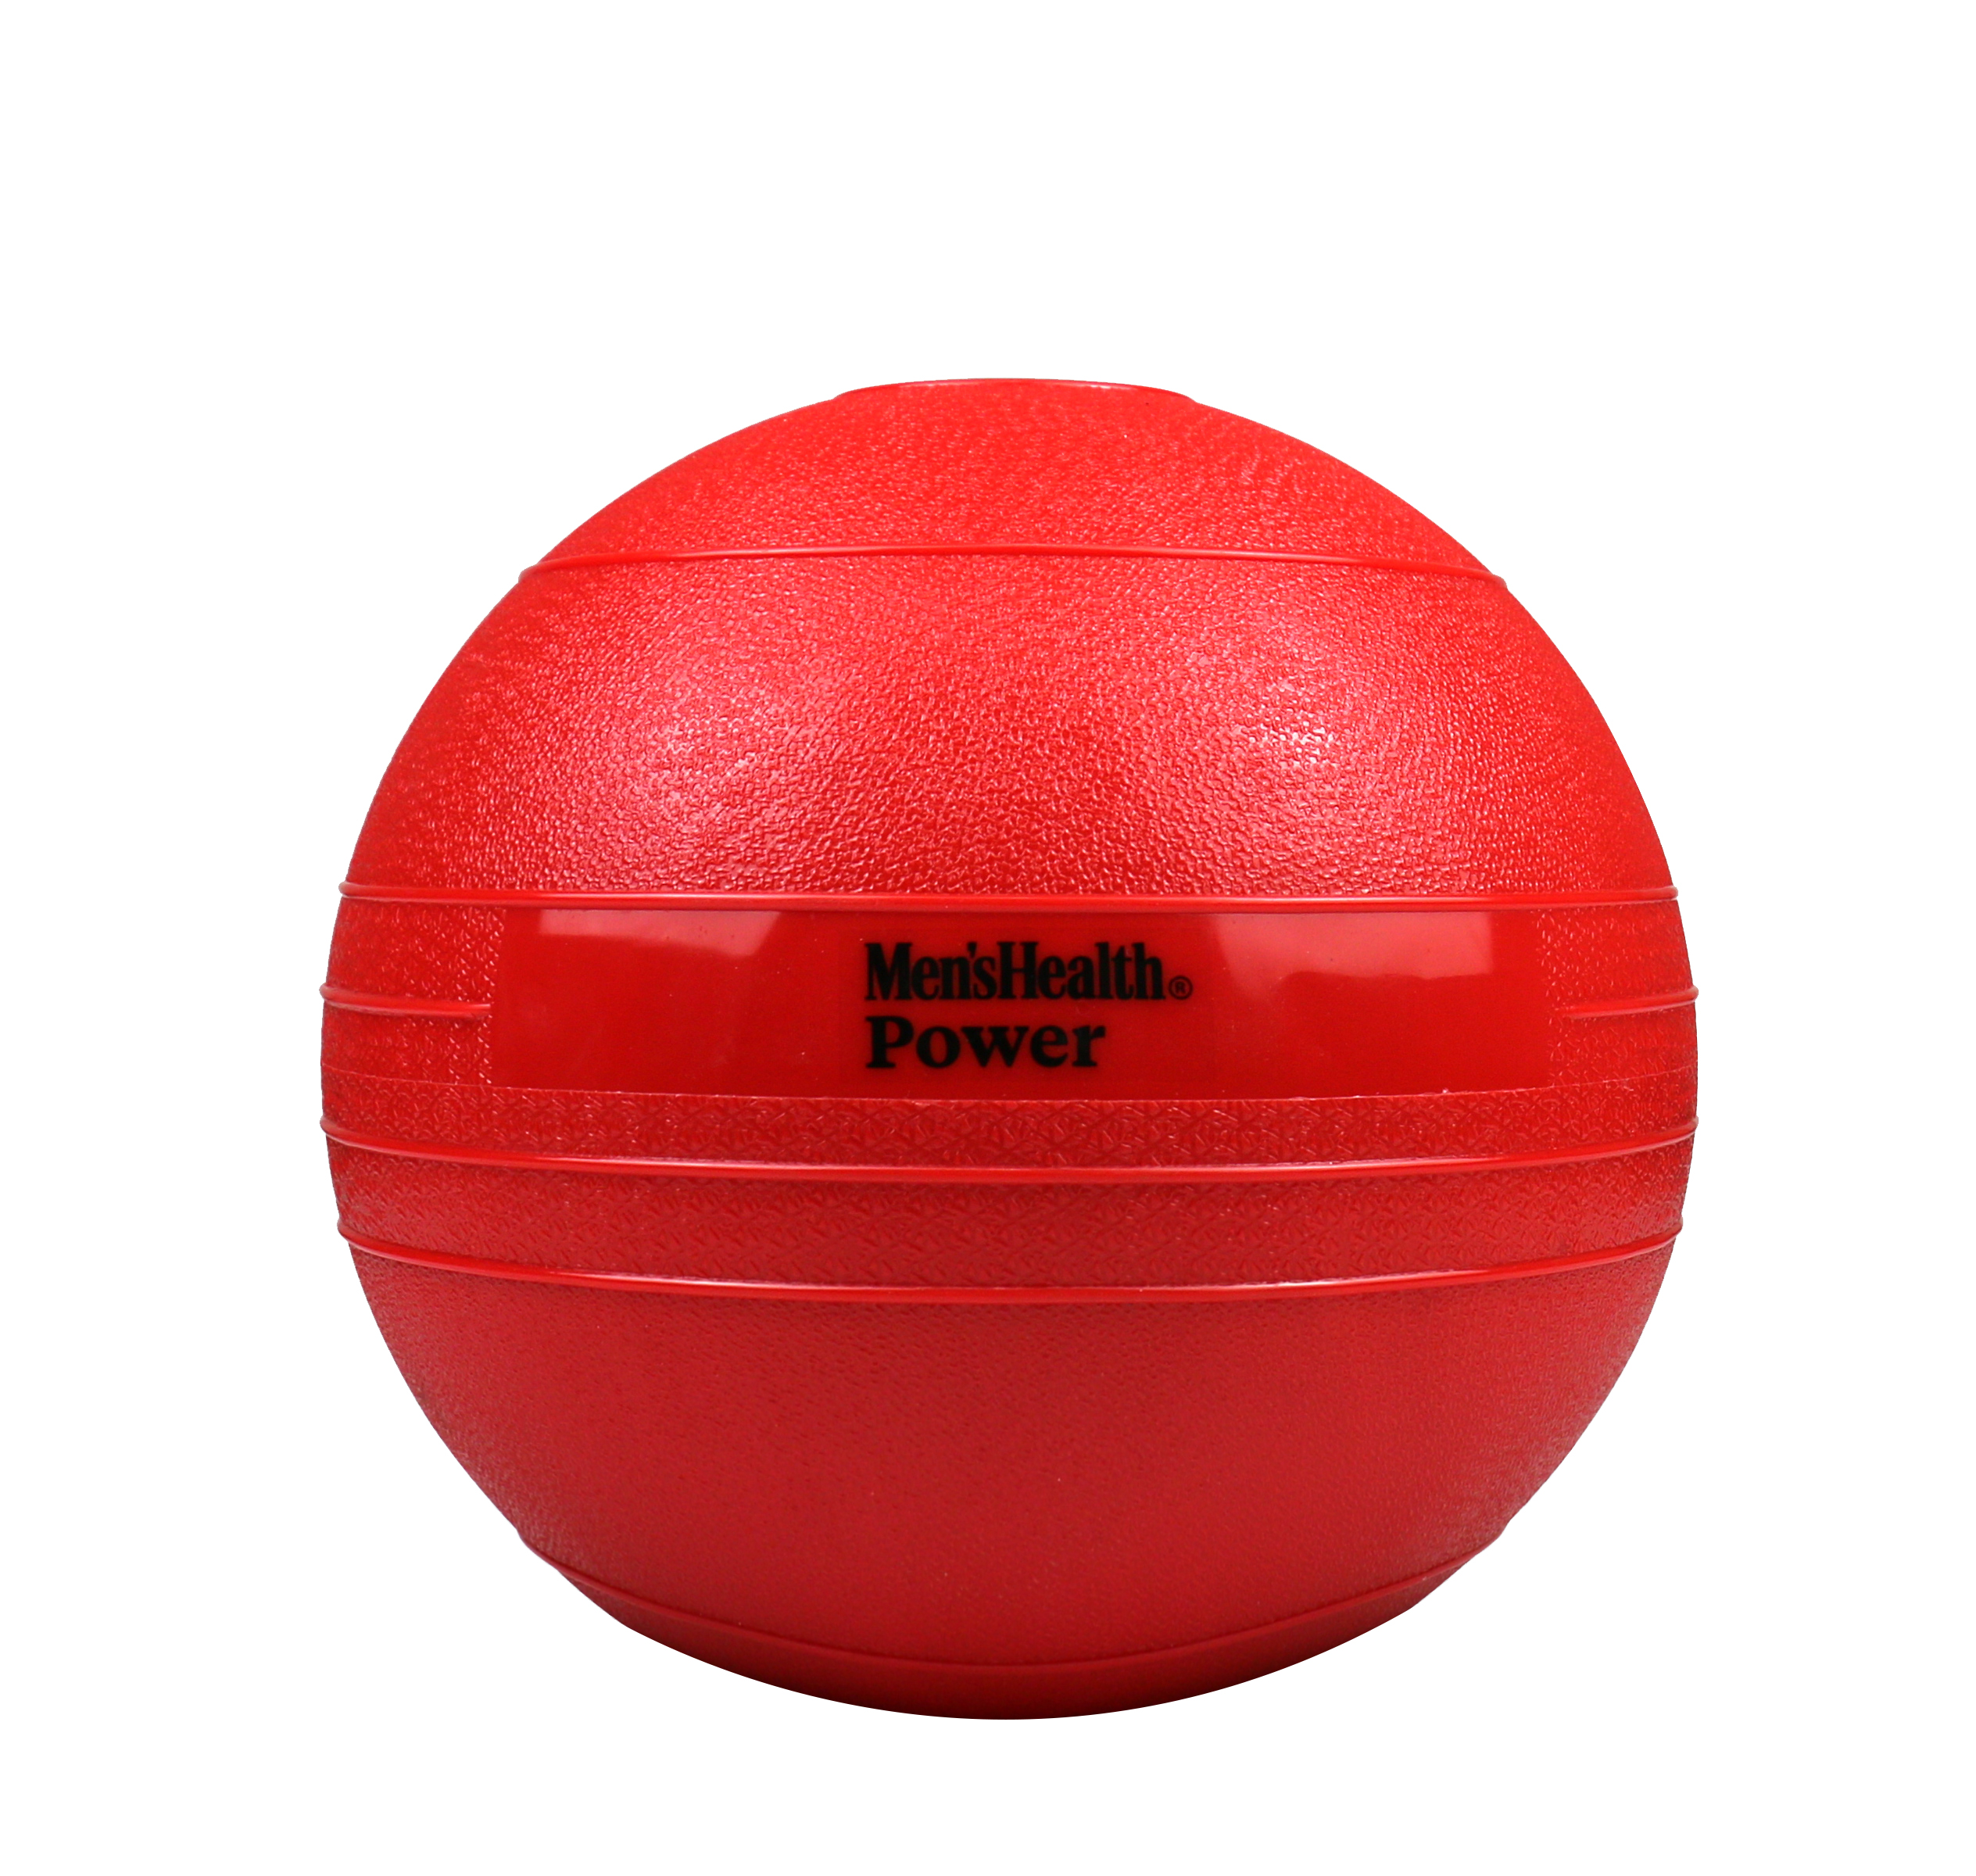 Men's Health Slam Ball - 10 kg